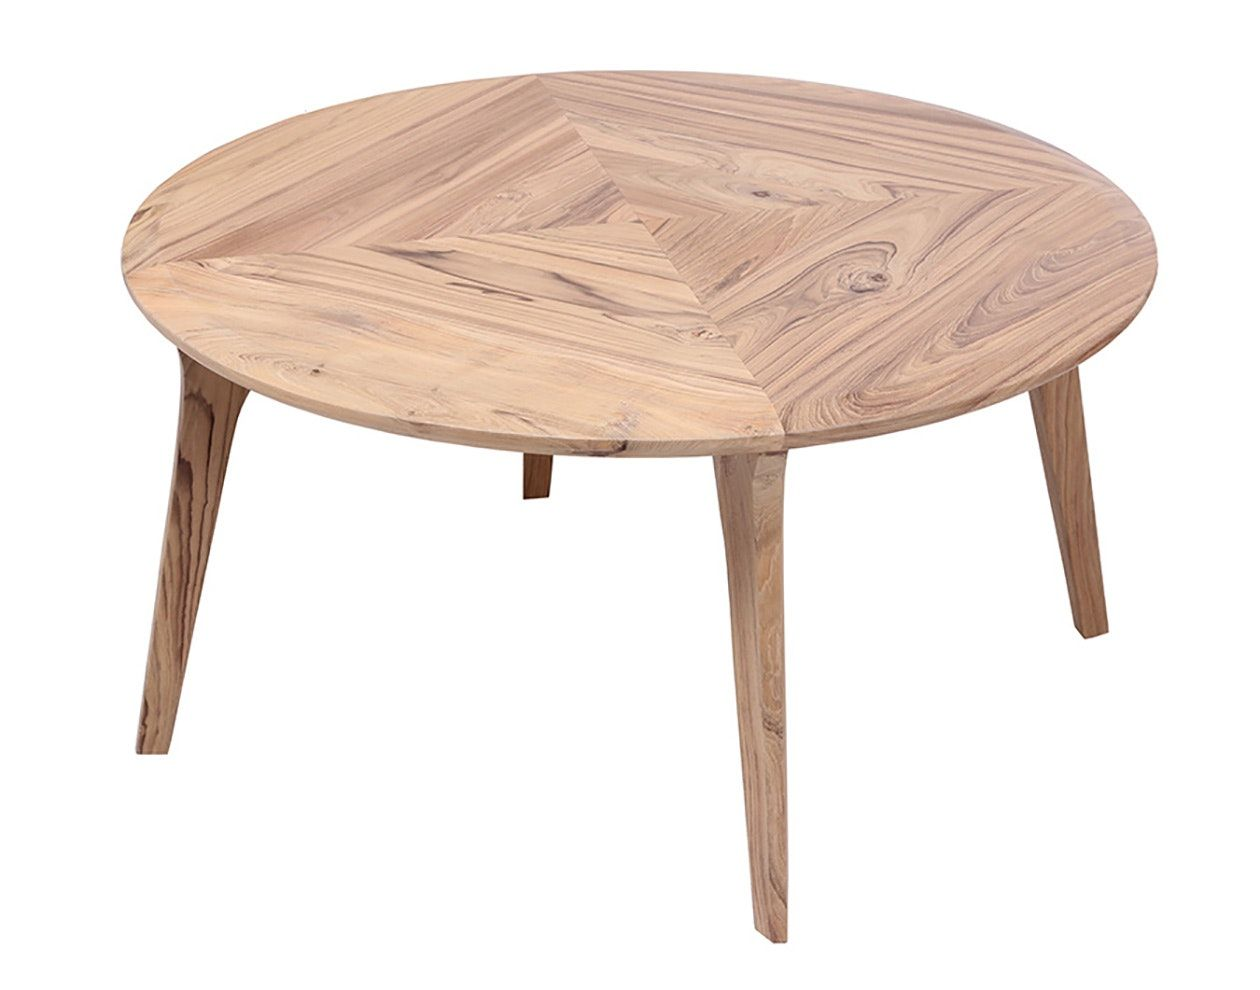 Vartula A Circular Centre Table By Alankaram Coffee Table Mid Century Coffee Table Rustic Square Coffee Table [ 990 x 1260 Pixel ]